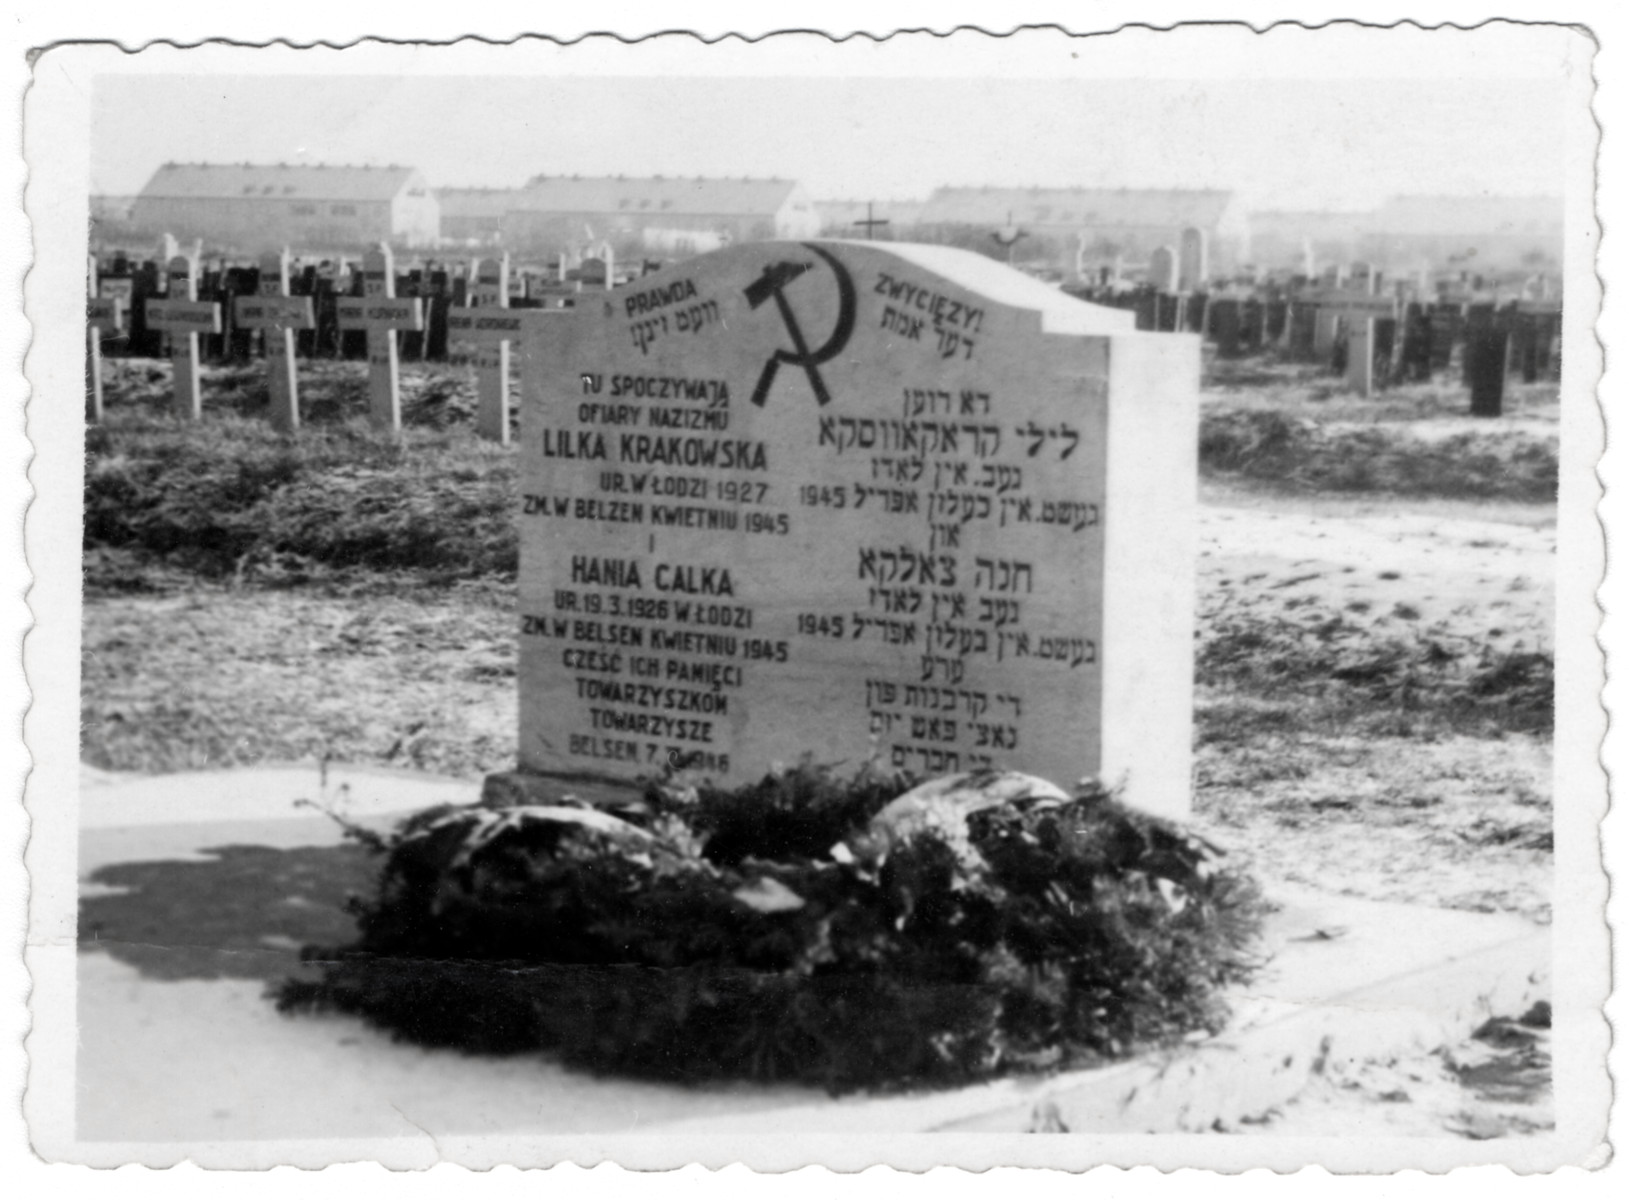 Communist grave marker in Bergen-Belsen sent to the donor by her friend Heniek on the anniversary of the Russian Revolution.